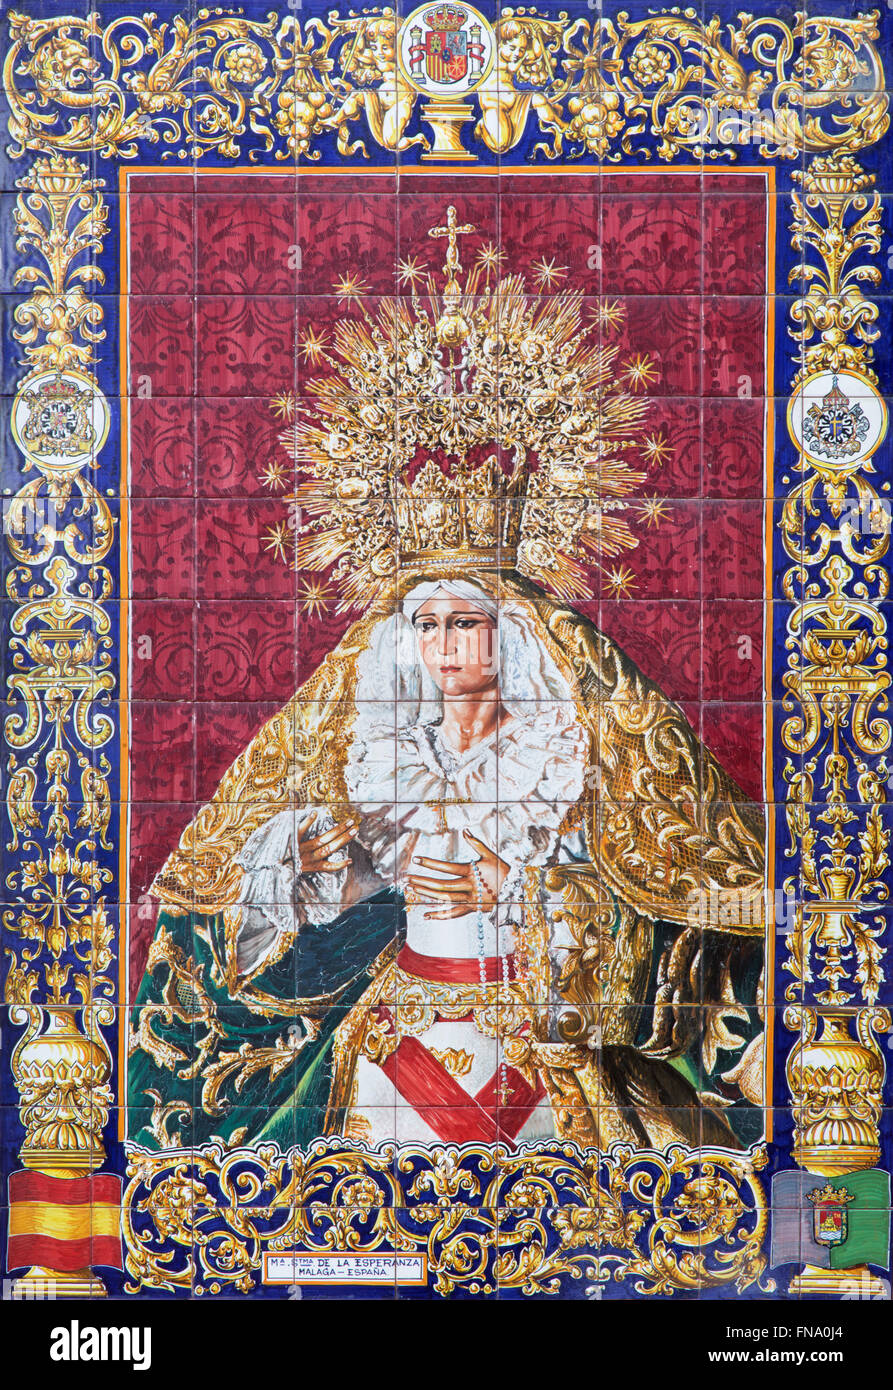 JERUSALEM, ISRAEL - MARCH 4, 2015: The ceramic tiled, cried Madonna from Malaga on the facade of house. - Stock Image